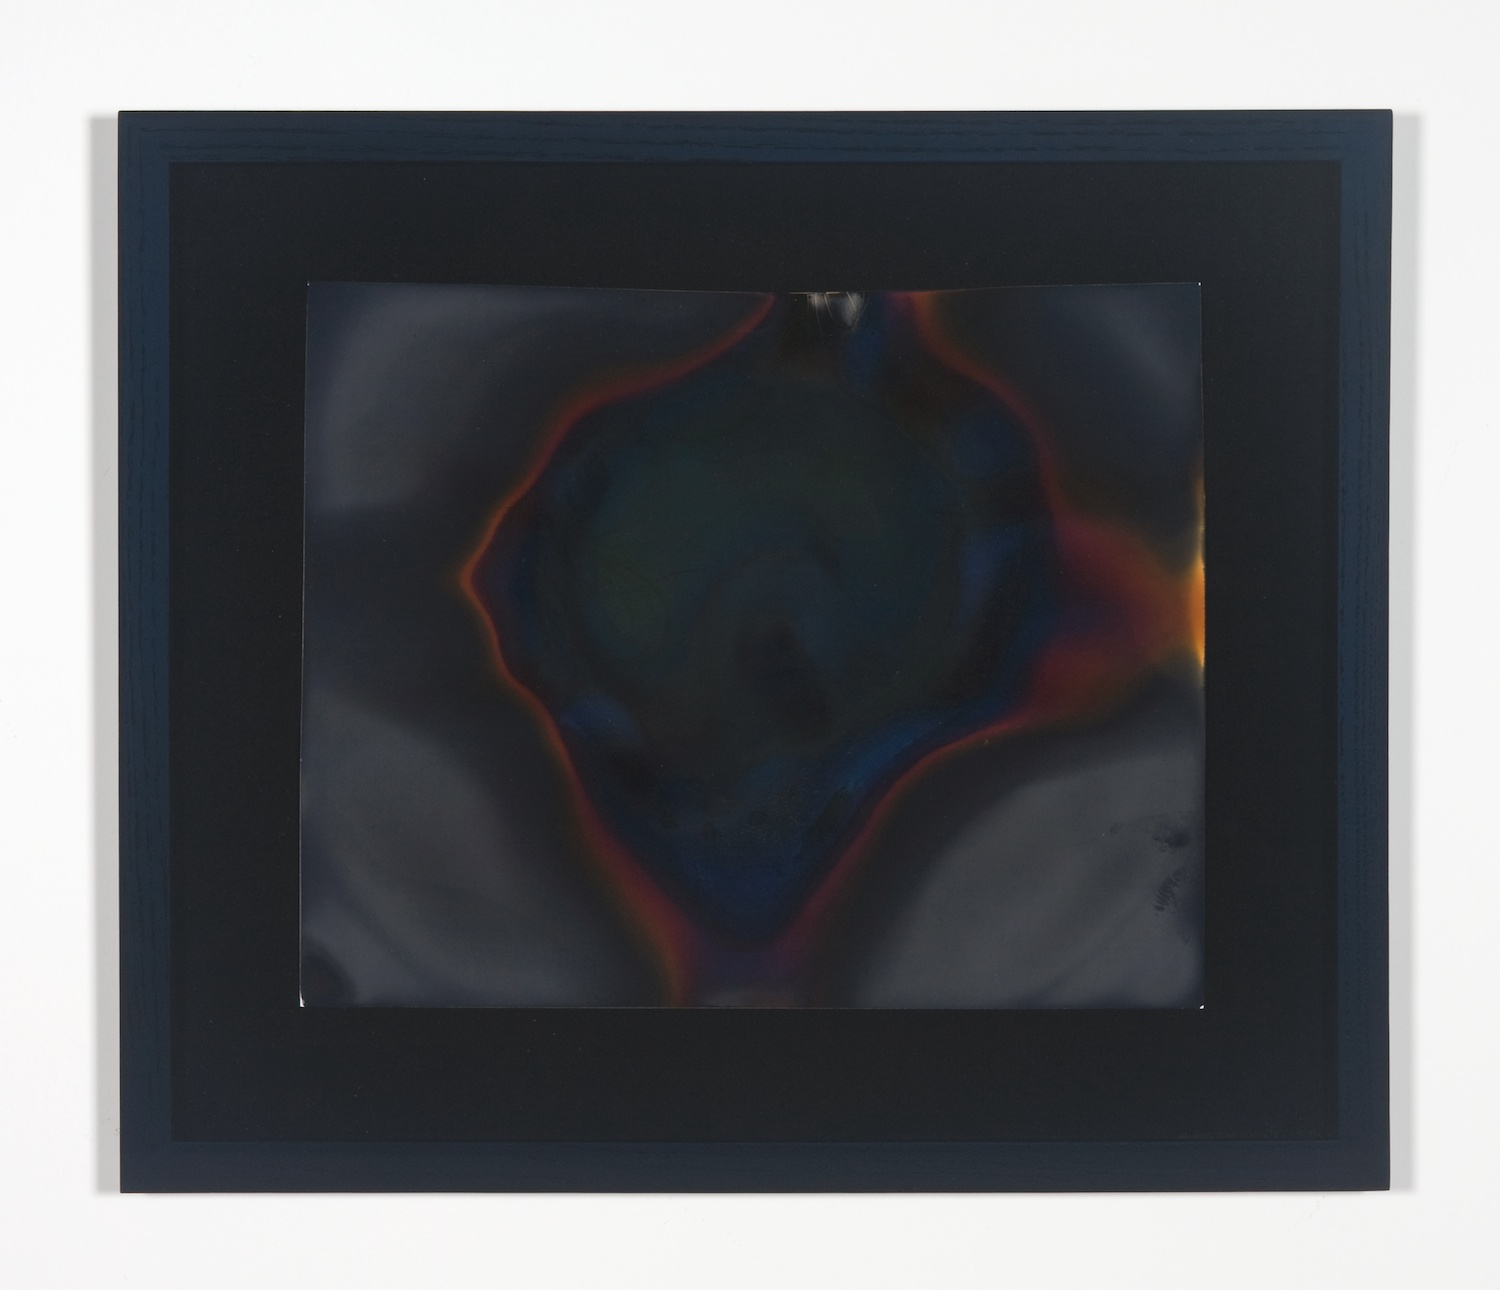 Shane Huffman  Looking for Cosmic Background Radiation in My Microwave  2008-2009 Framed silver gelatin print 14h x 11w in